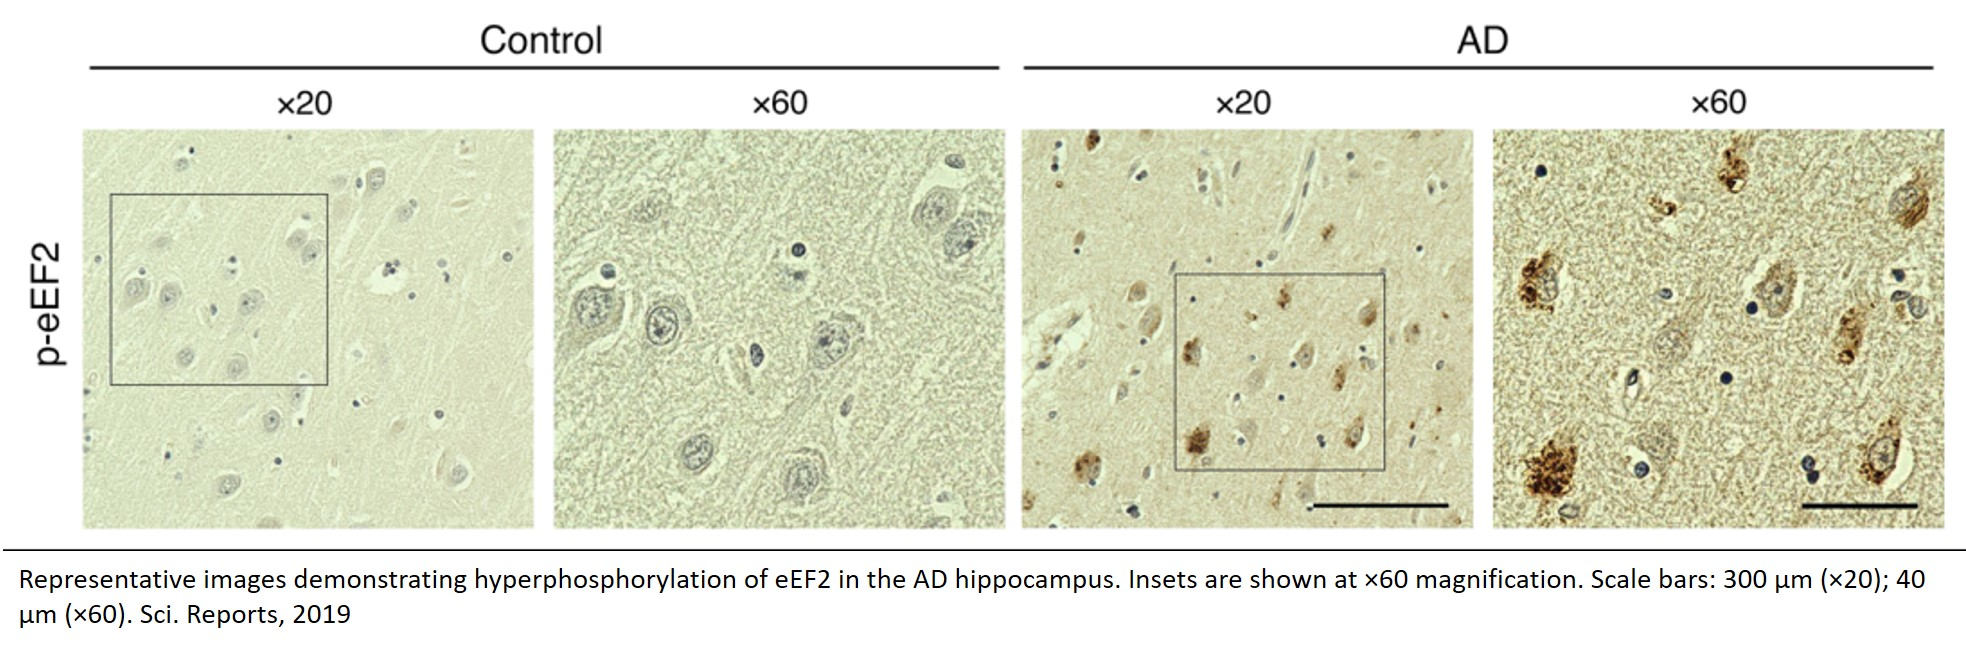 Reducing mRNA translation factor alleviates pathophysiology in Alzheimer's disease model mice